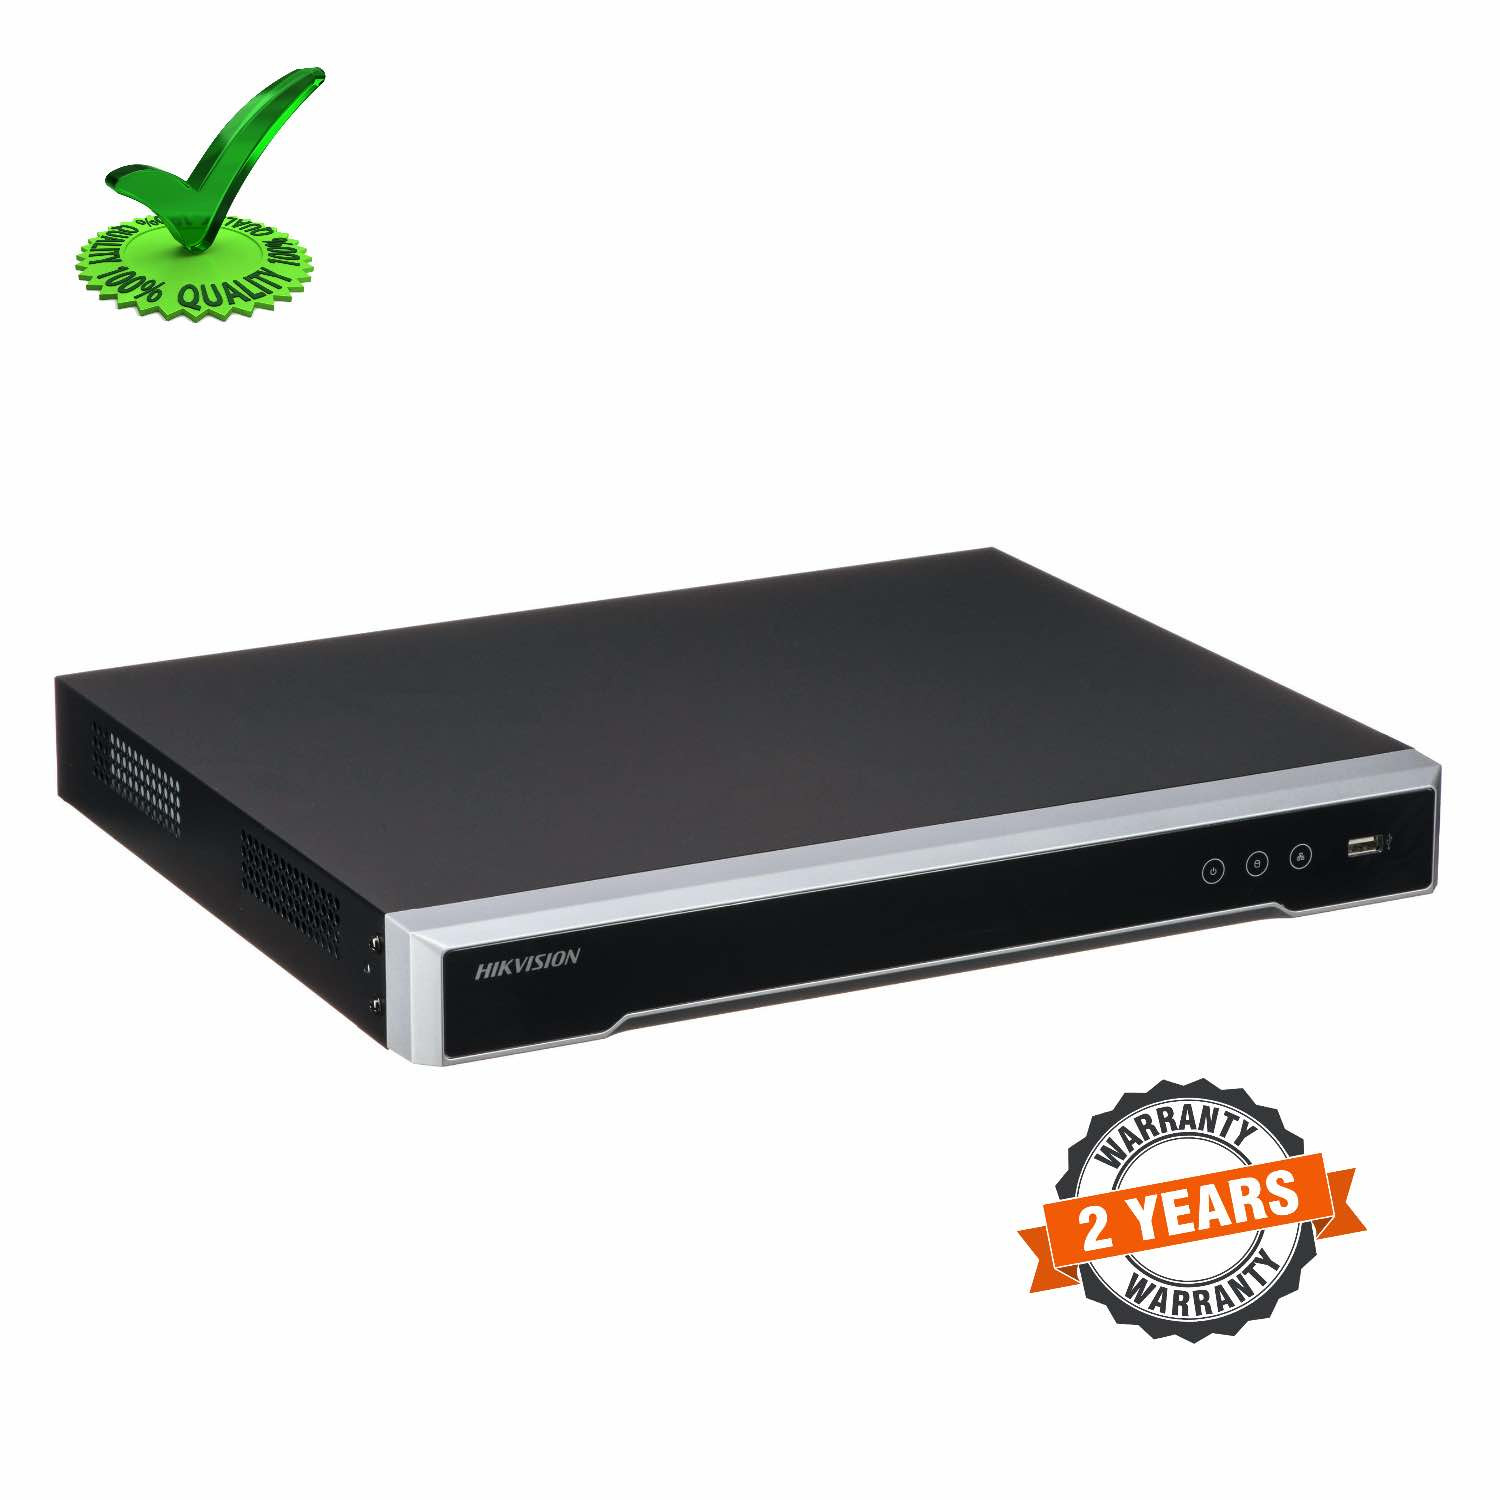 Hikvision DS-7P16NI-K2 Nvr 16Ch Network Video Recorder